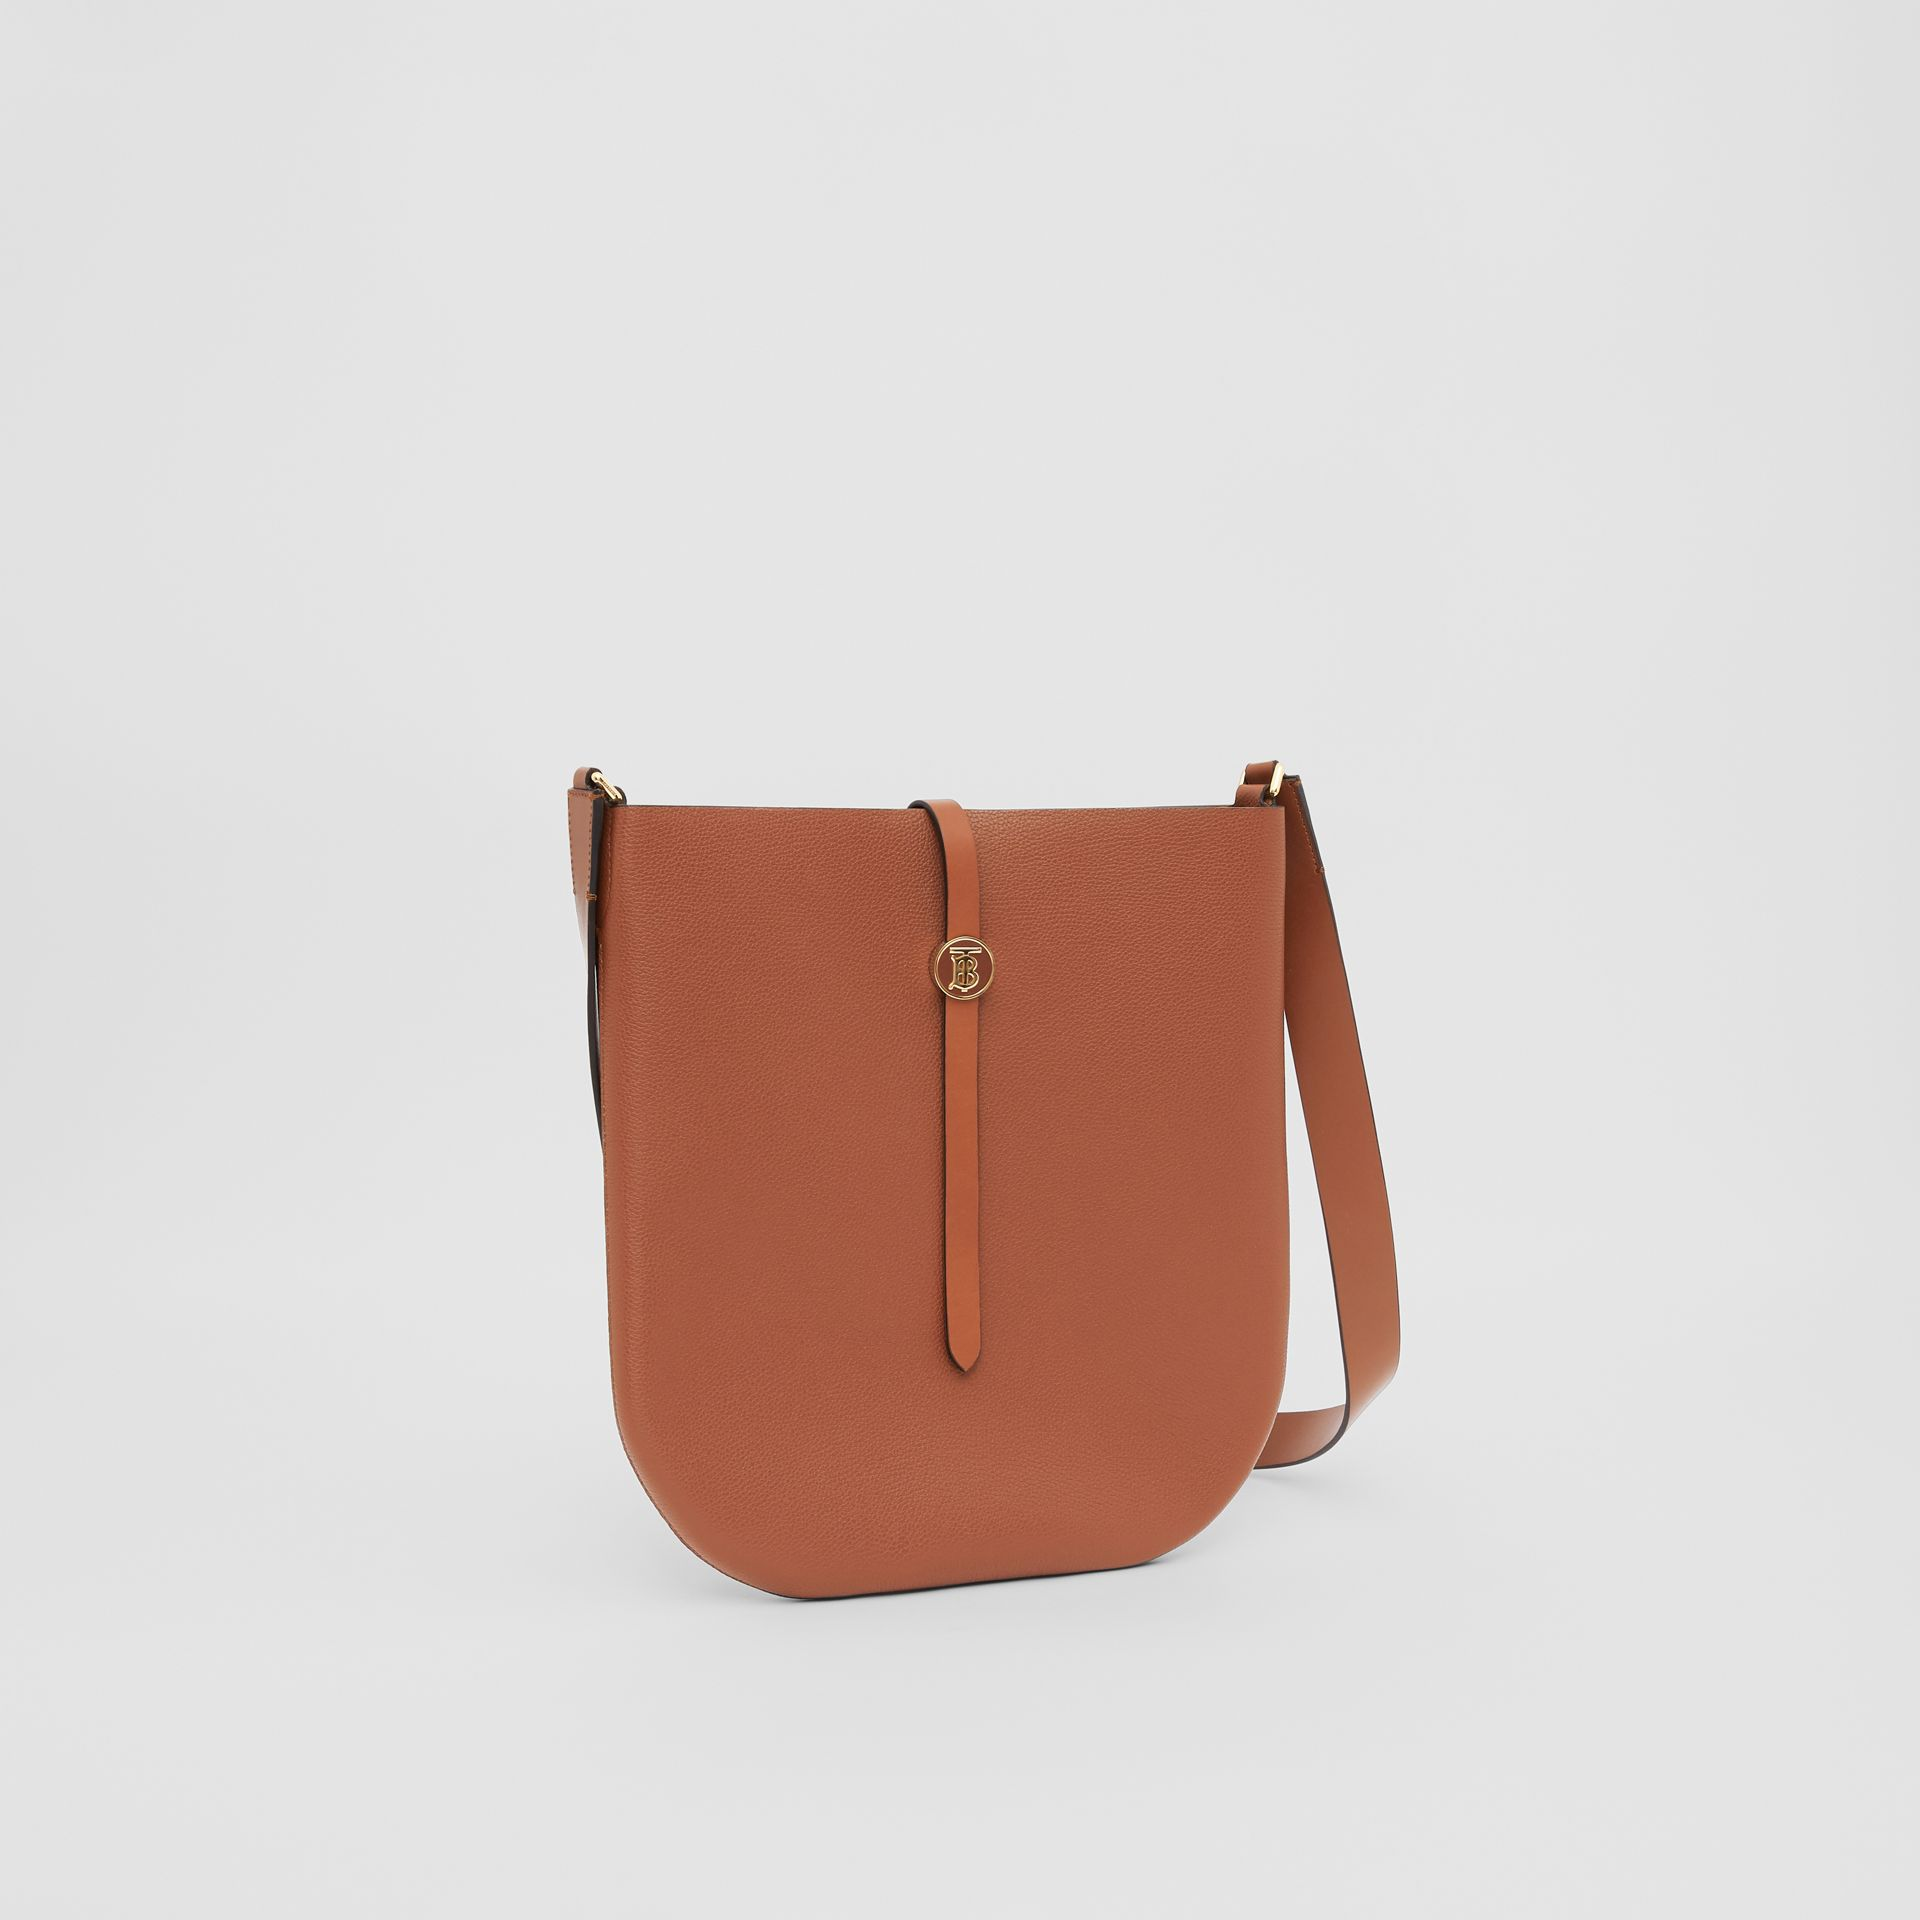 Grainy Leather Anne Bag in Tan - Women | Burberry United Kingdom - gallery image 4